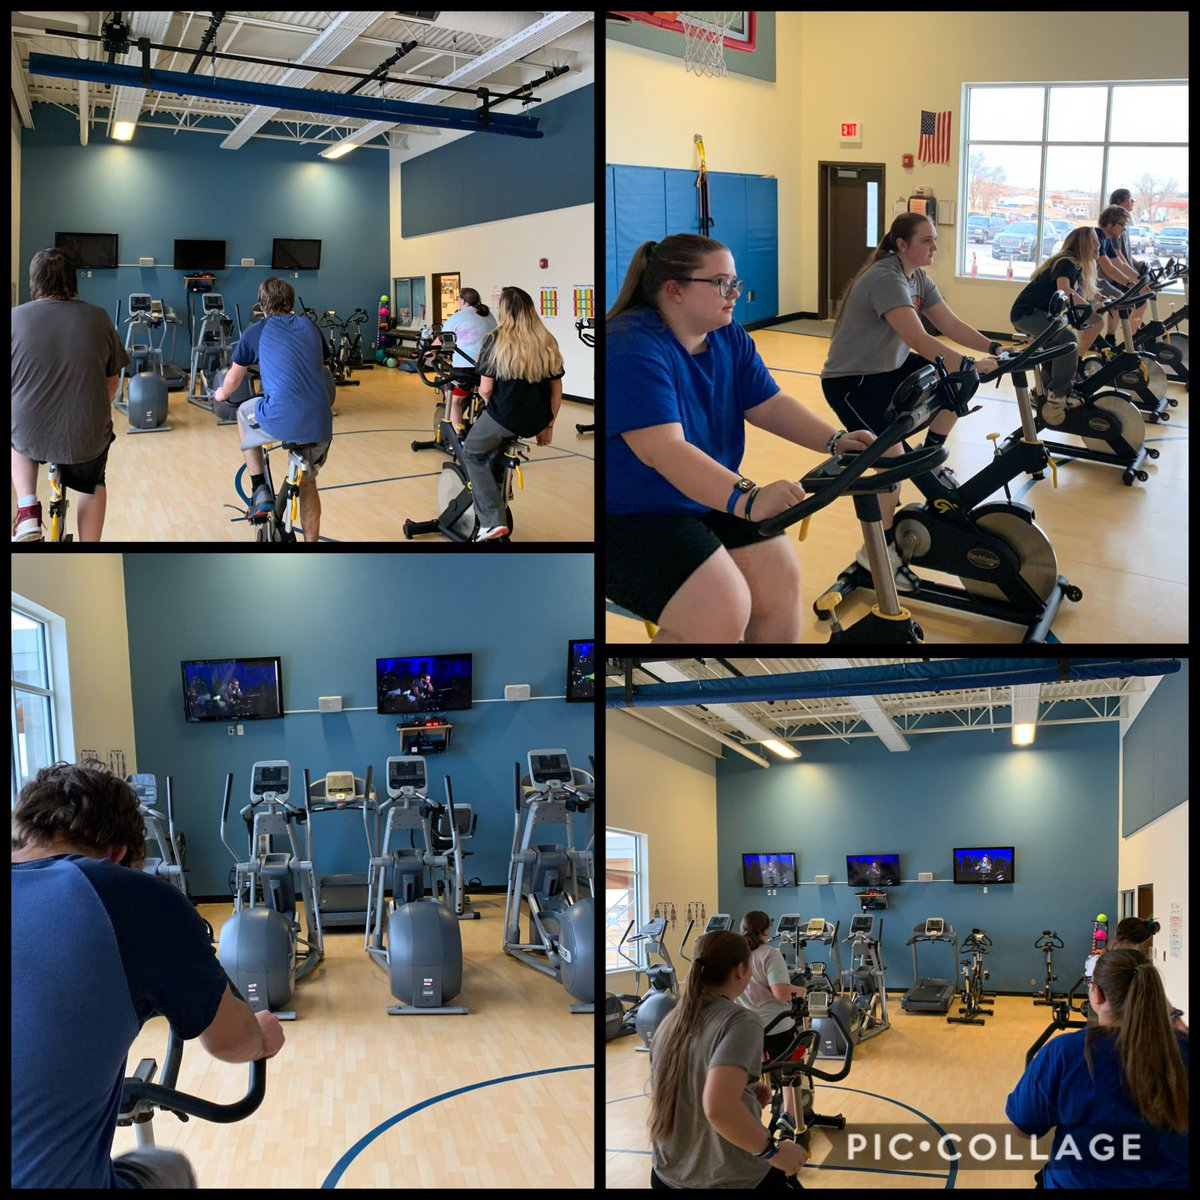 One of our favorite activities...Cycling!!  Thank you to @onepeloton and @alextoussaint25 for a great ride!!  This is my Lifetime Personal Fitness class getting a little sweaty!!! #cycling #physed #hspepic.twitter.com/oo3ND6vZk9